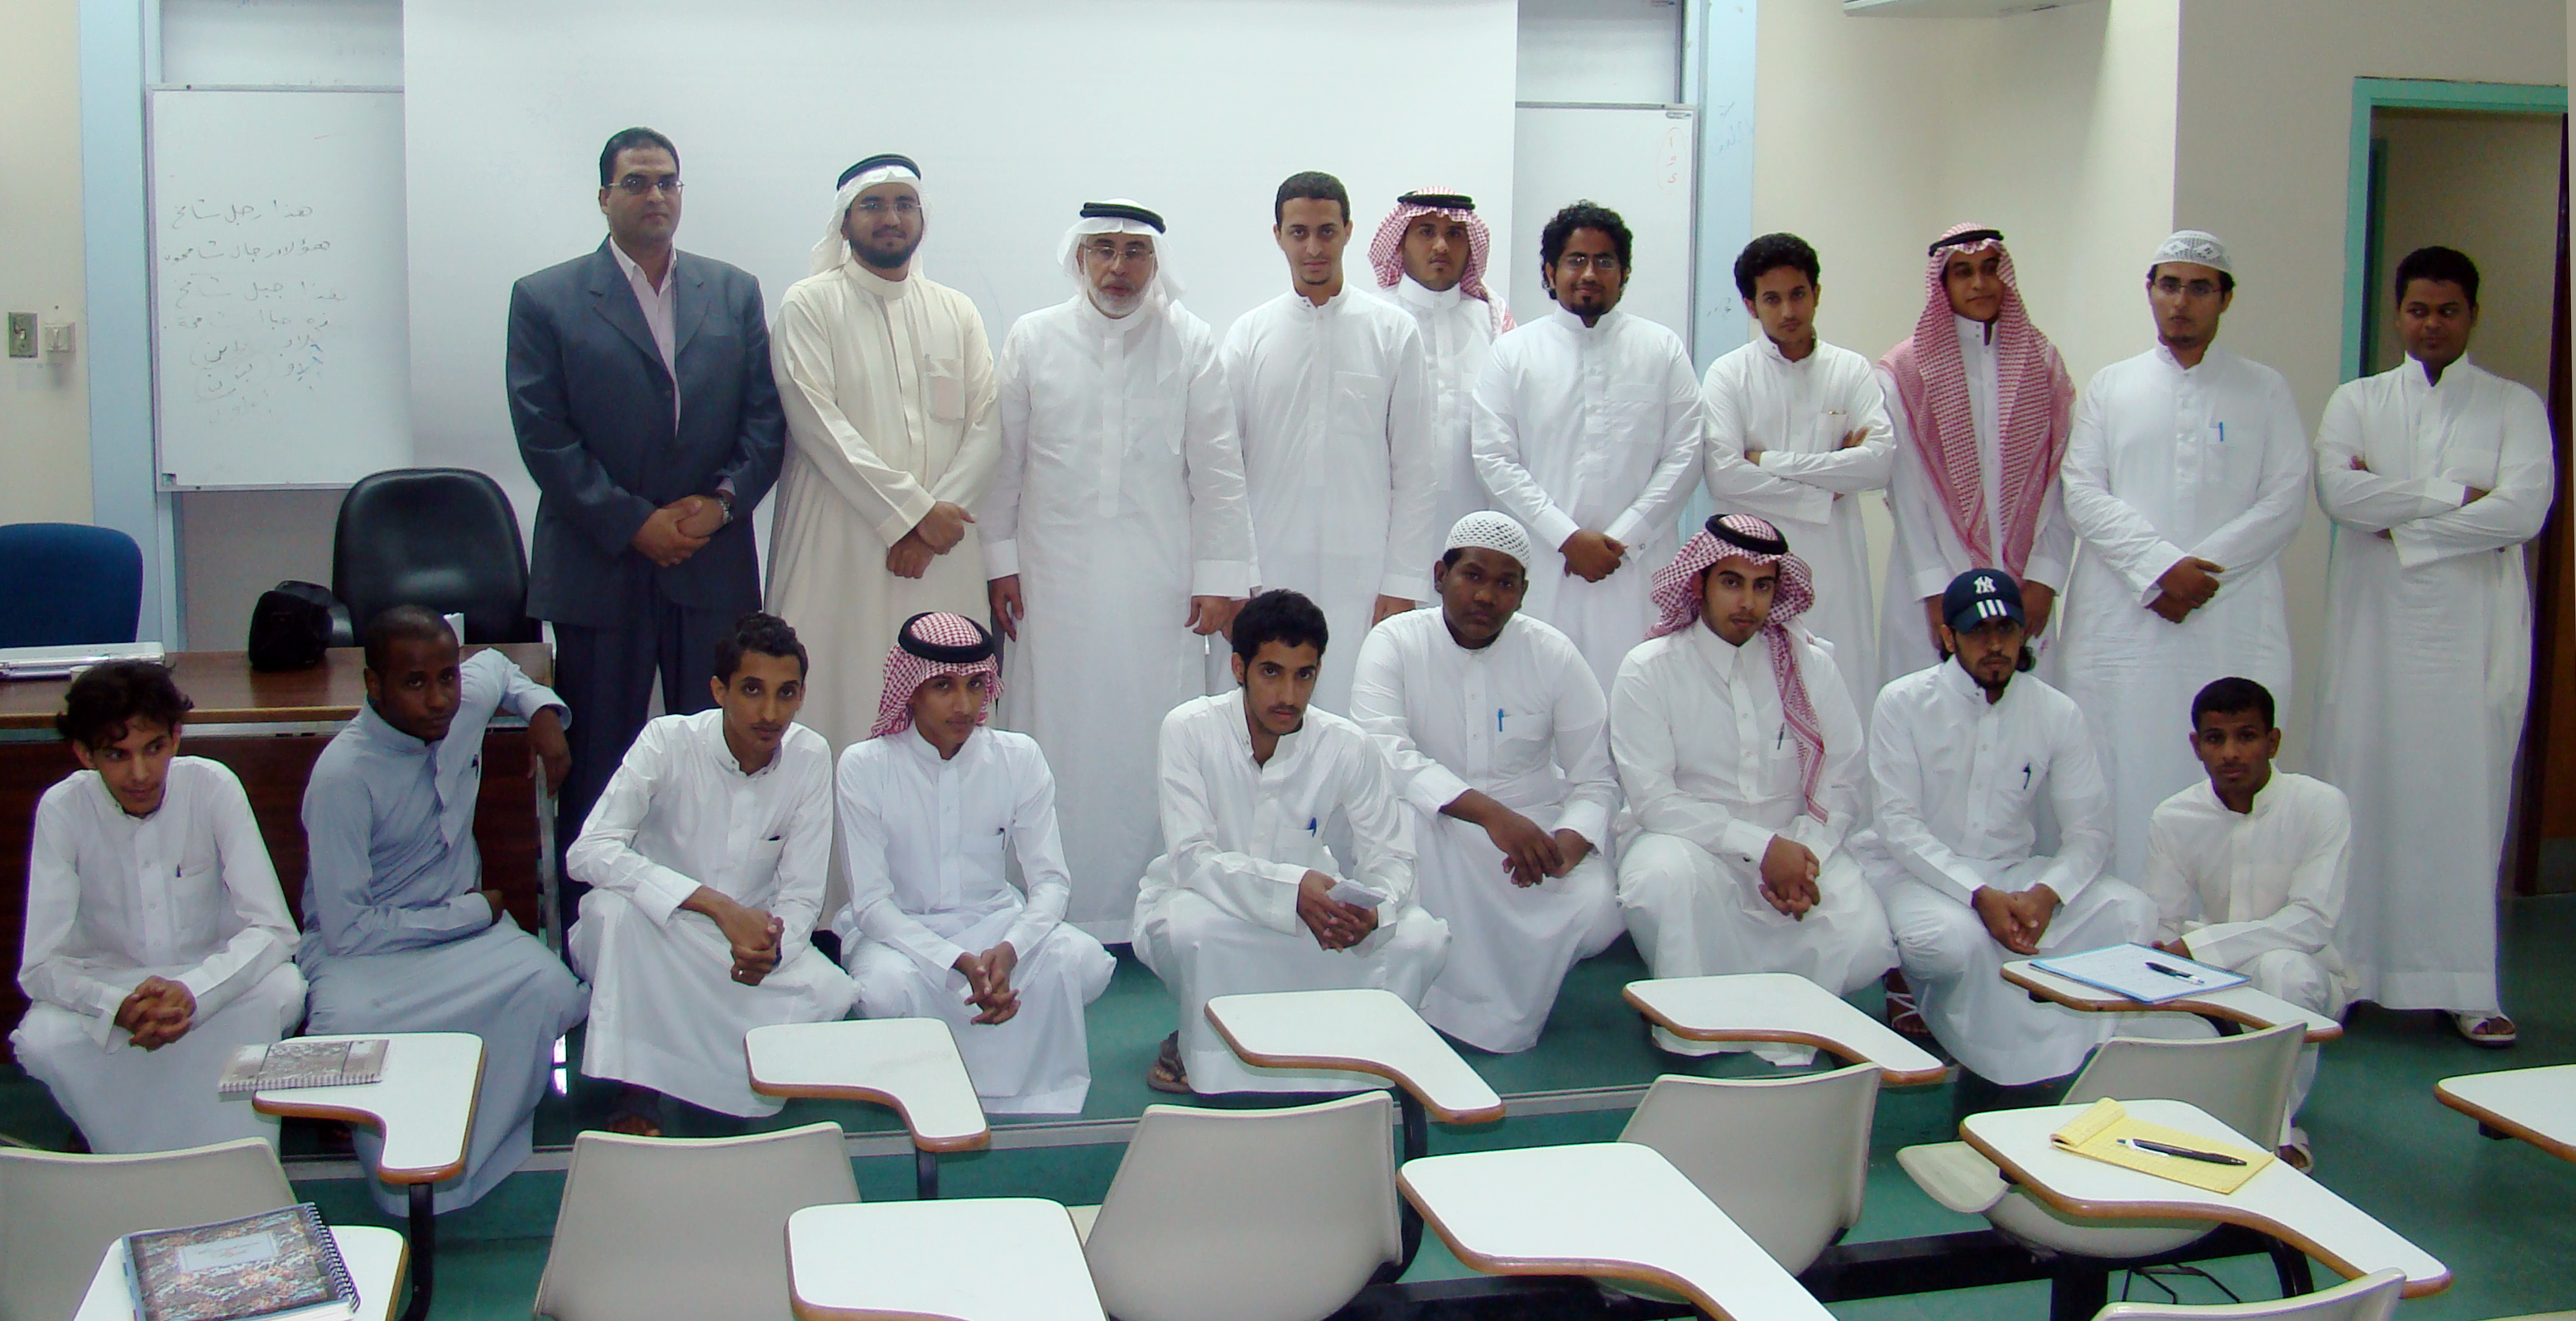 Future journalists from the University of Taiba visit Al Masar Agency